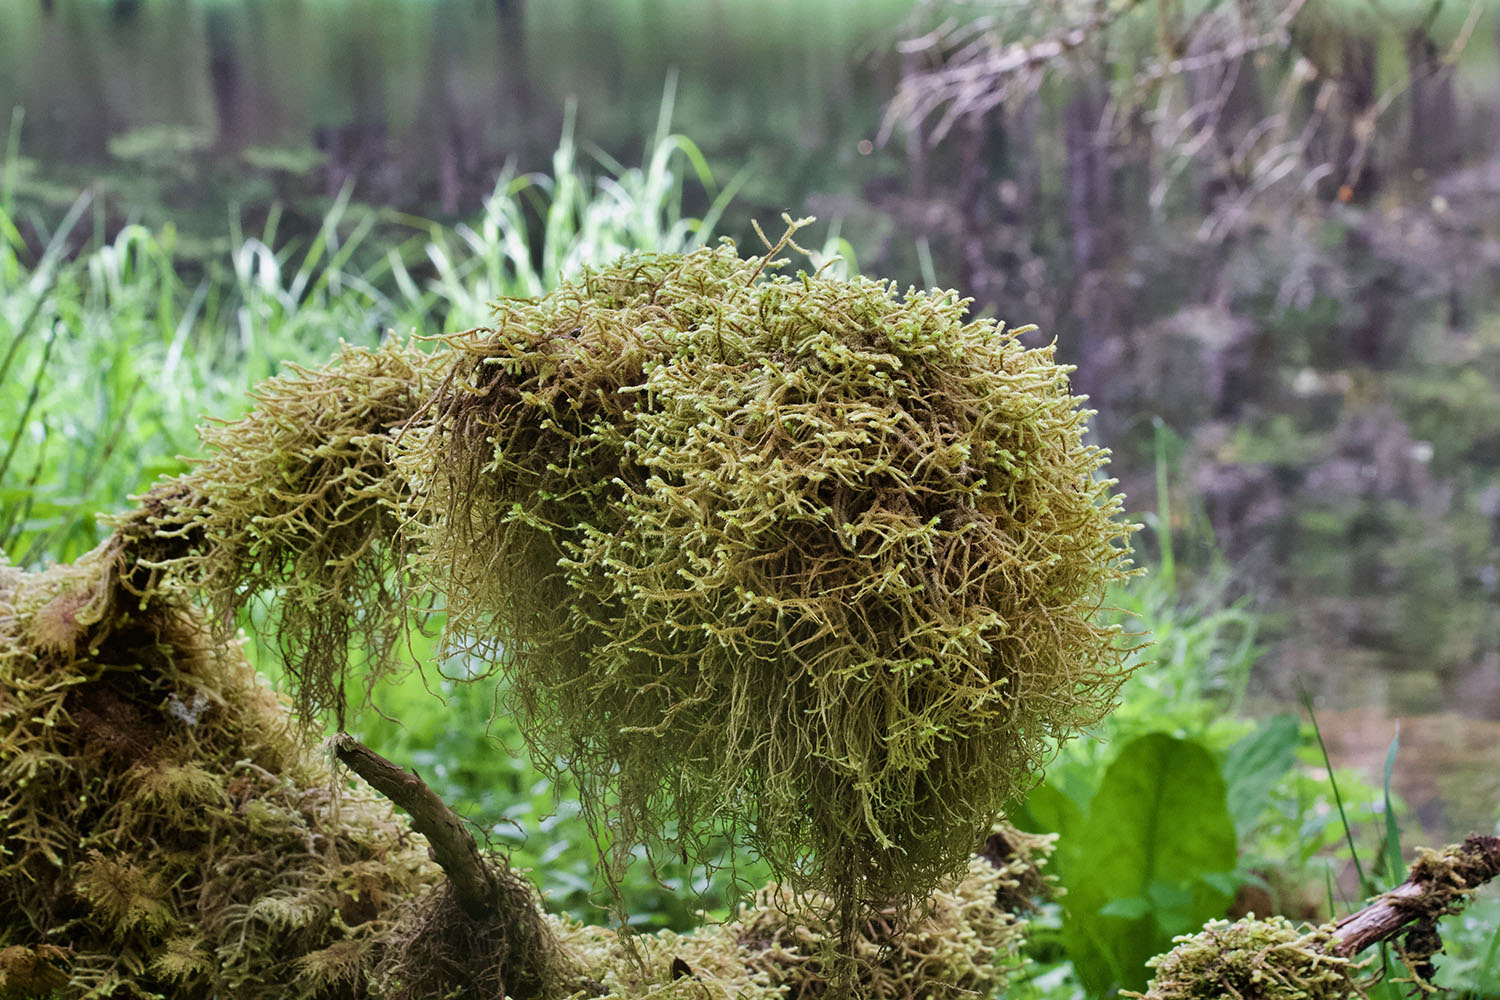 Moss in Alaskan rainforest